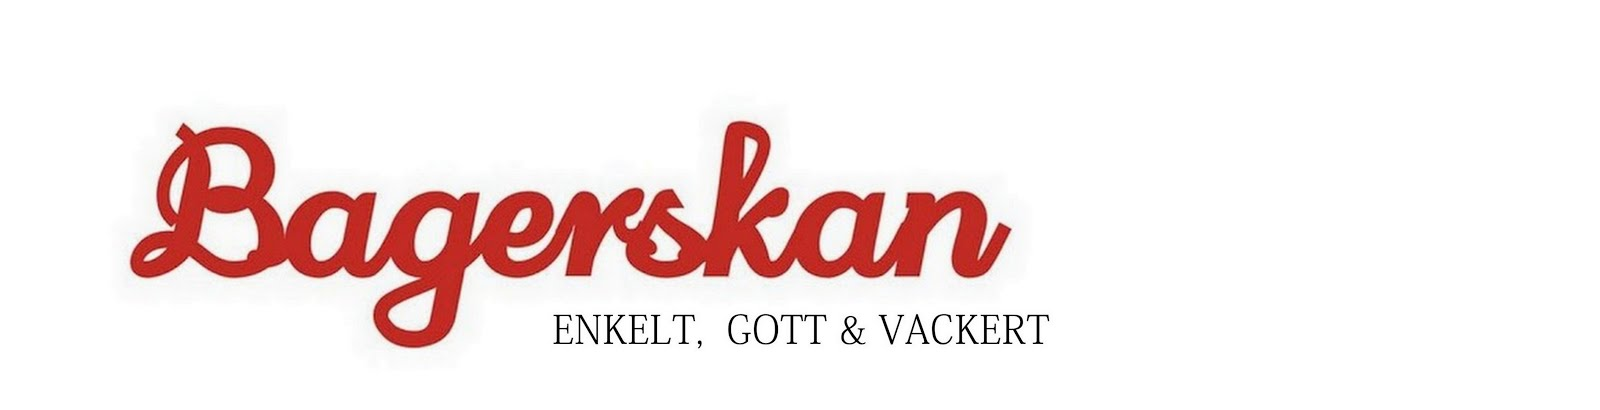 Bagerskan